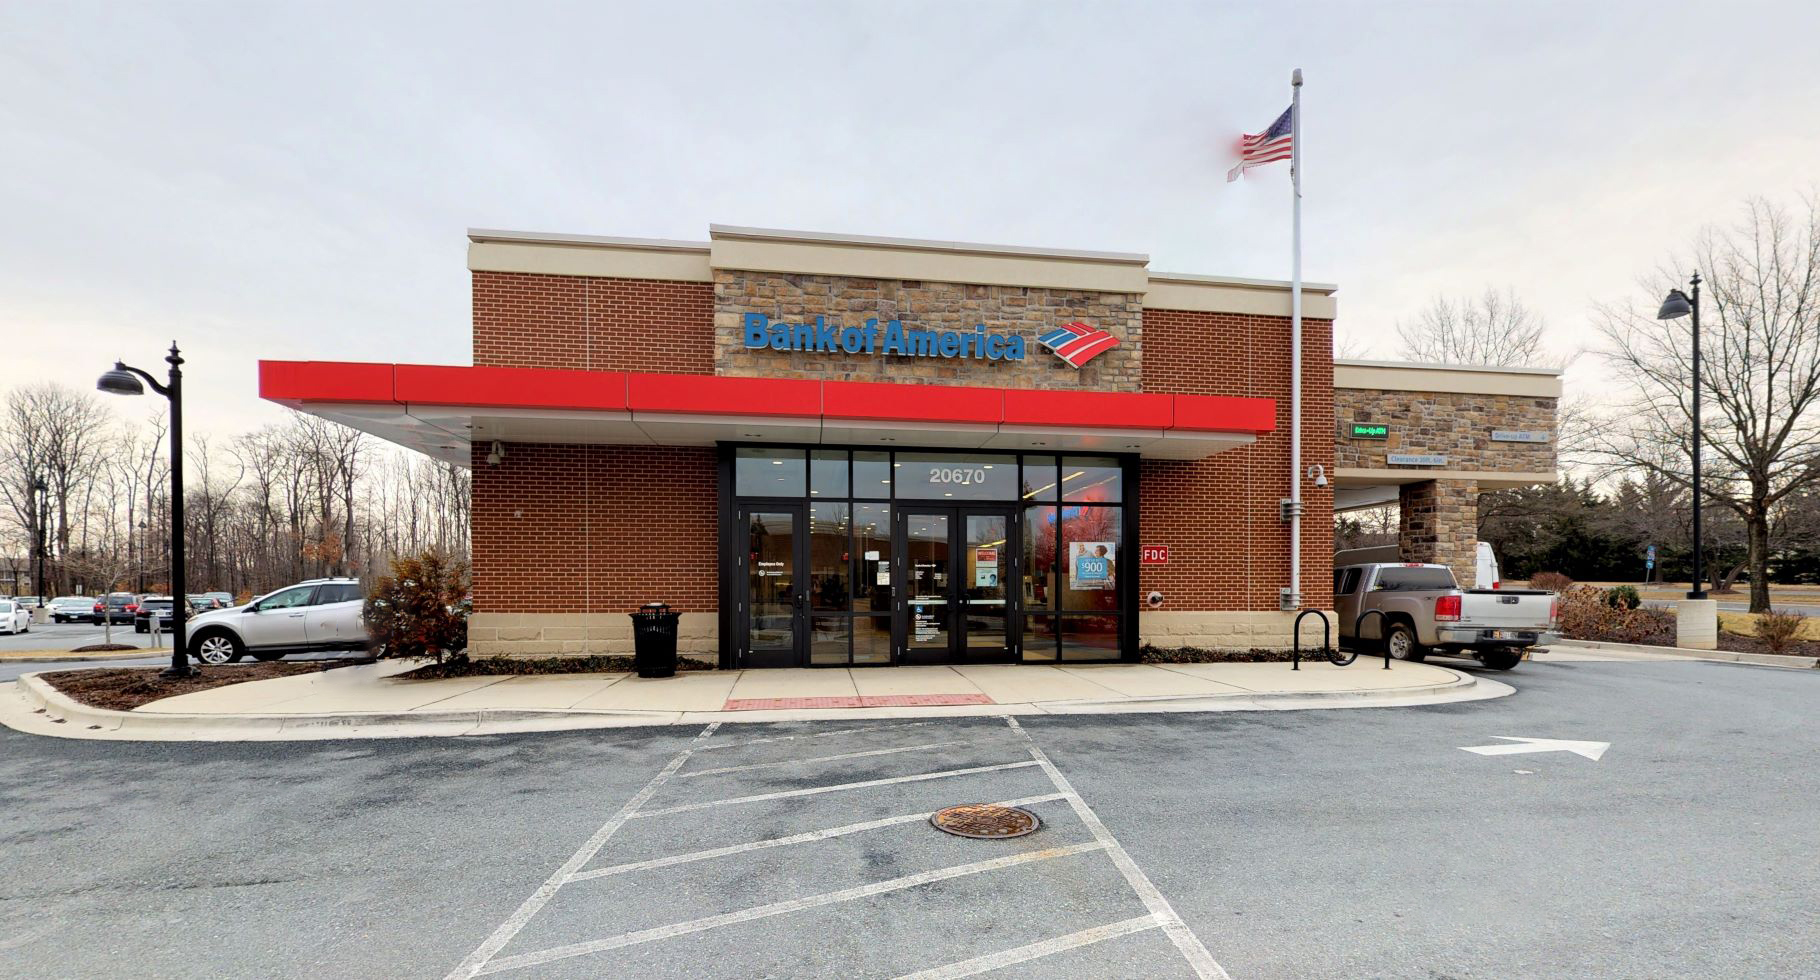 Bank of America financial center with drive-thru ATM | 20670 Seneca Meadows Pkwy, Germantown, MD 20876